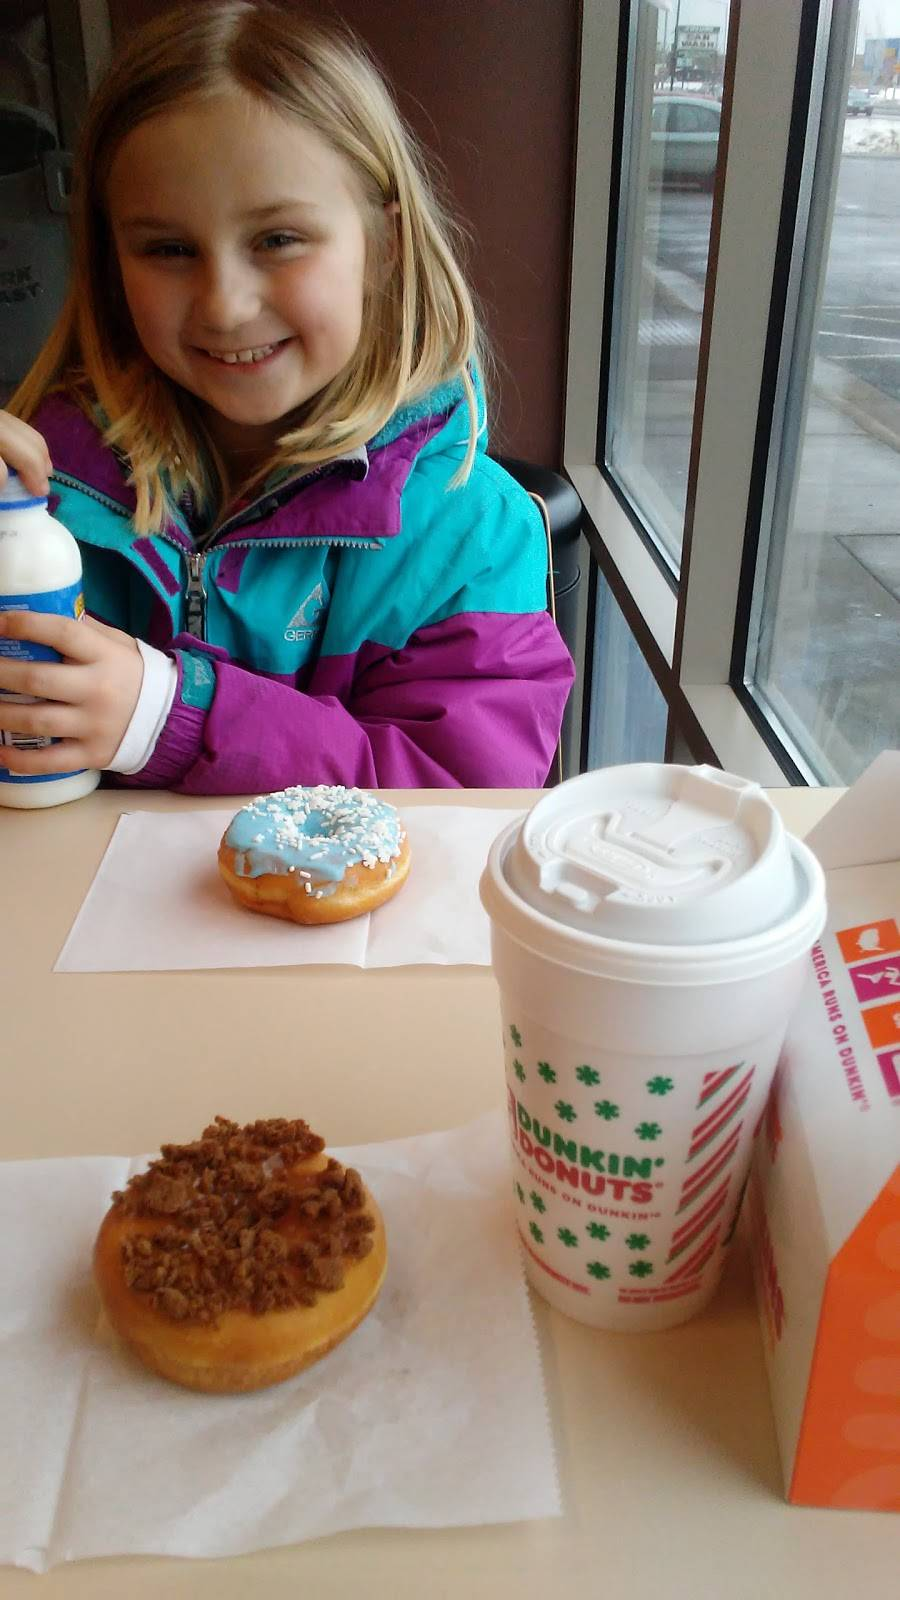 Dunkin | bakery | 3110 Tower Ave Suite 101, Superior, WI 54880, USA | 7159190959 OR +1 715-919-0959